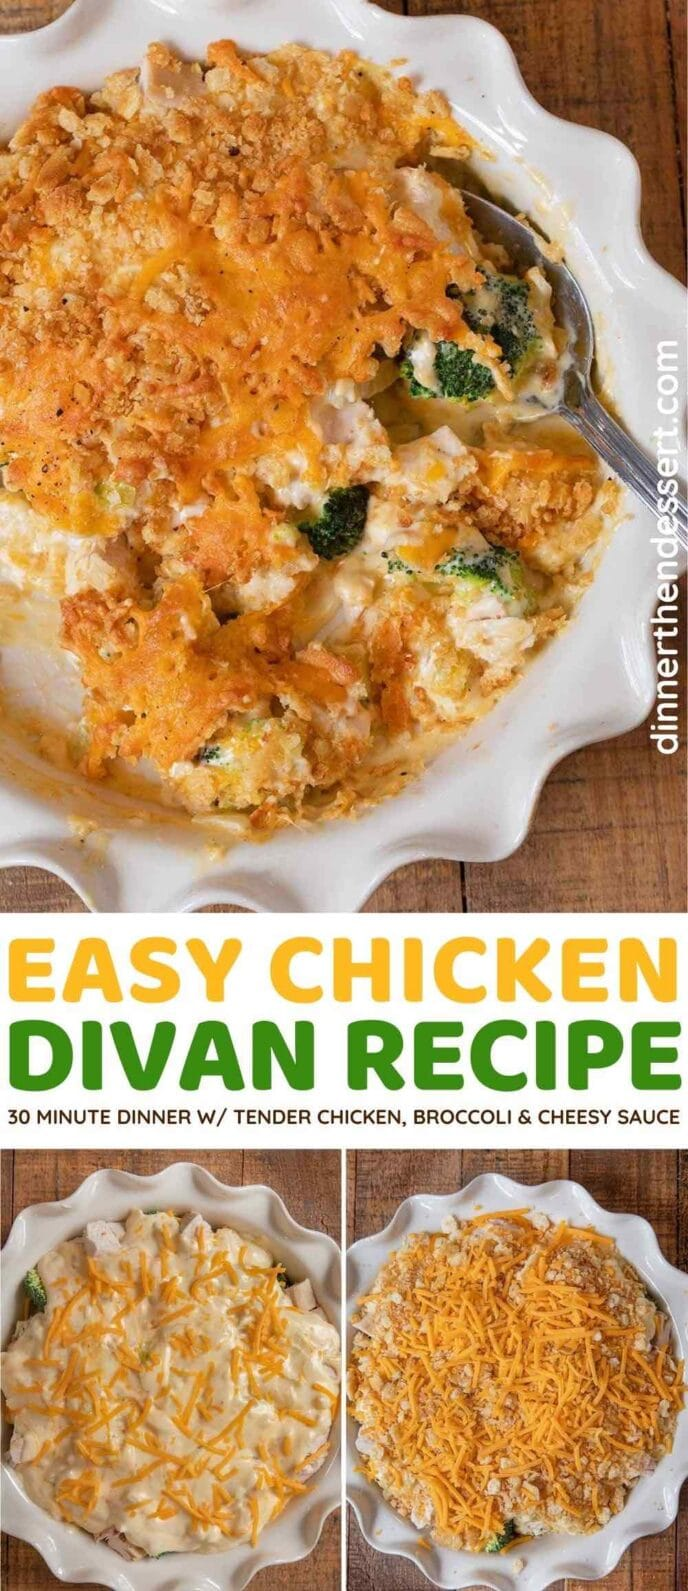 Easy Chicken Divan